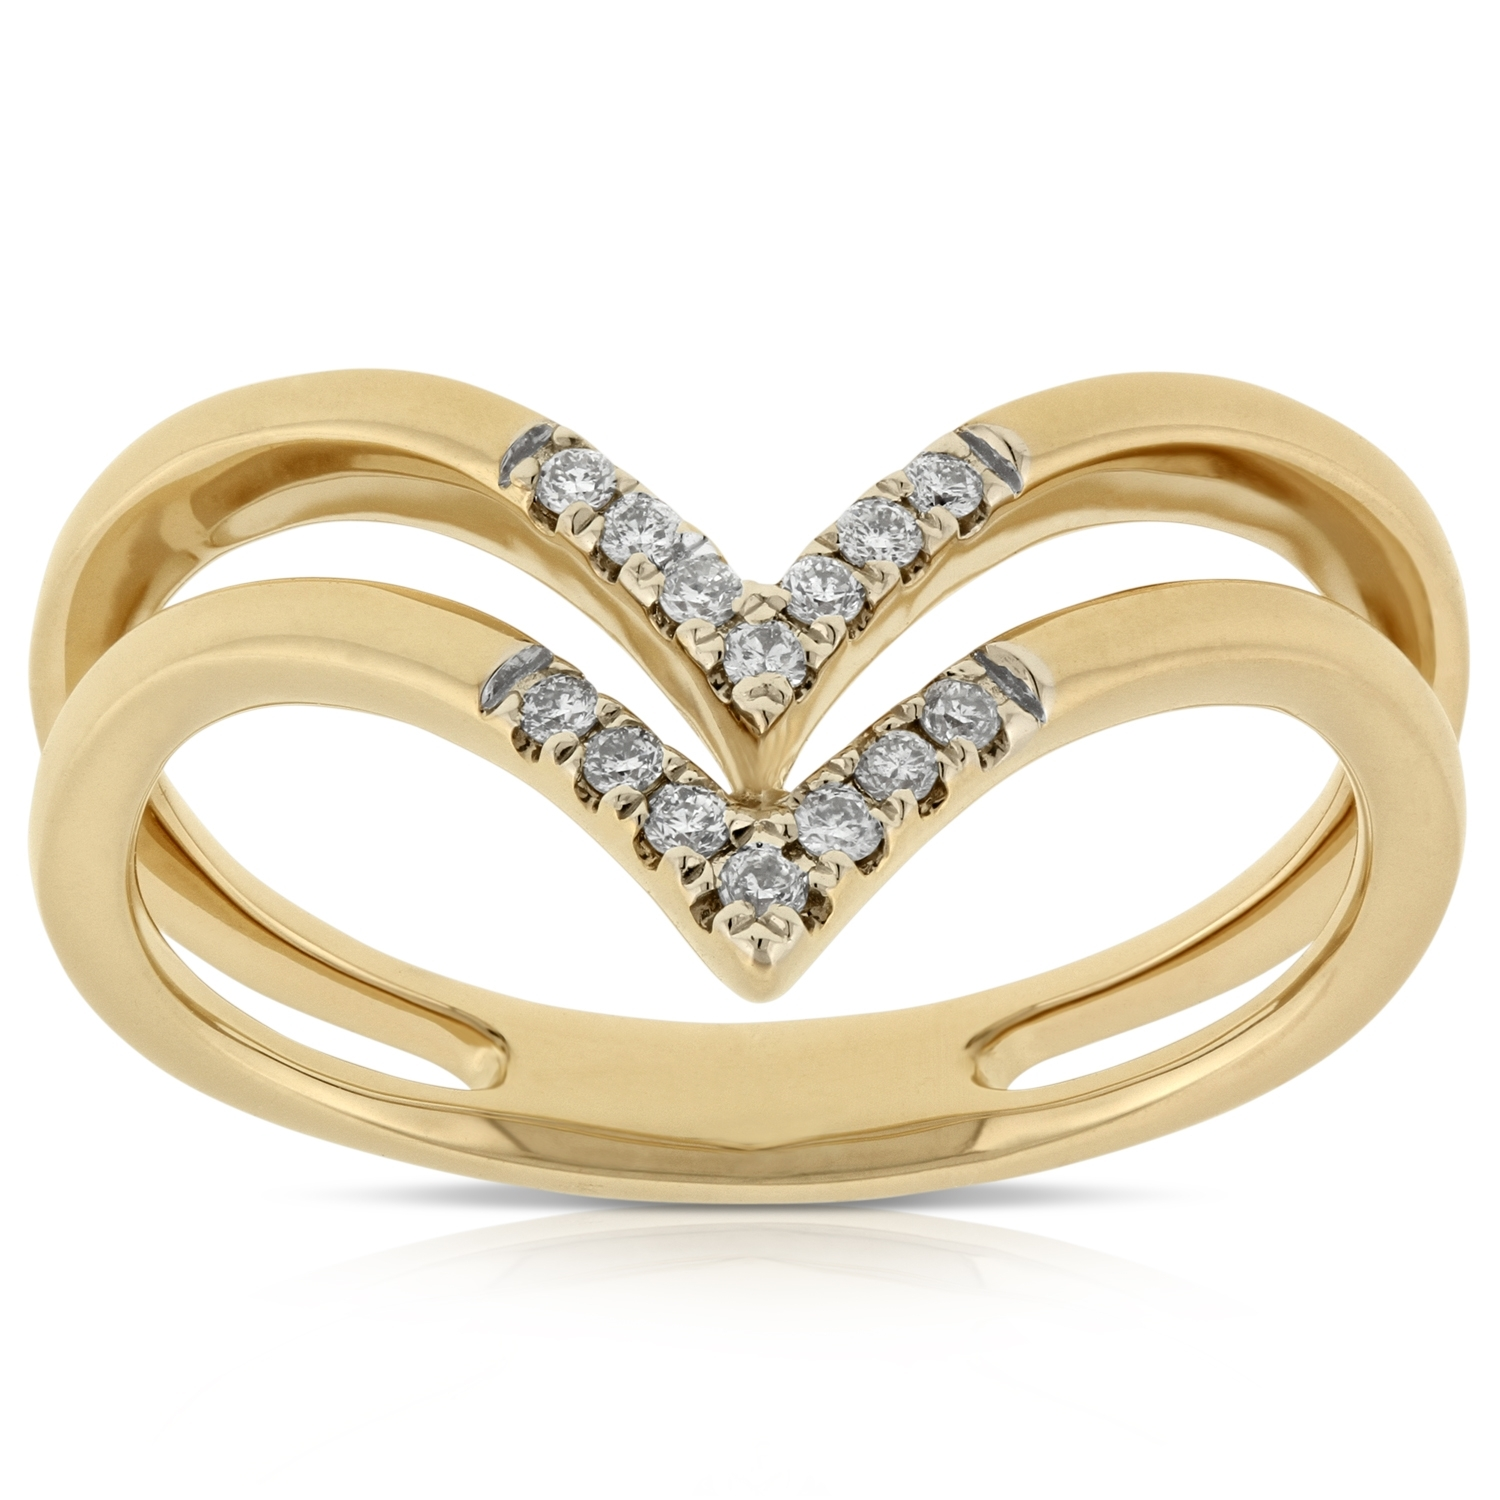 Double Chevron Diamond Ring 14K | Ben Bridge Jeweler Throughout Most Popular Diamond Chevron Rings (View 10 of 15)